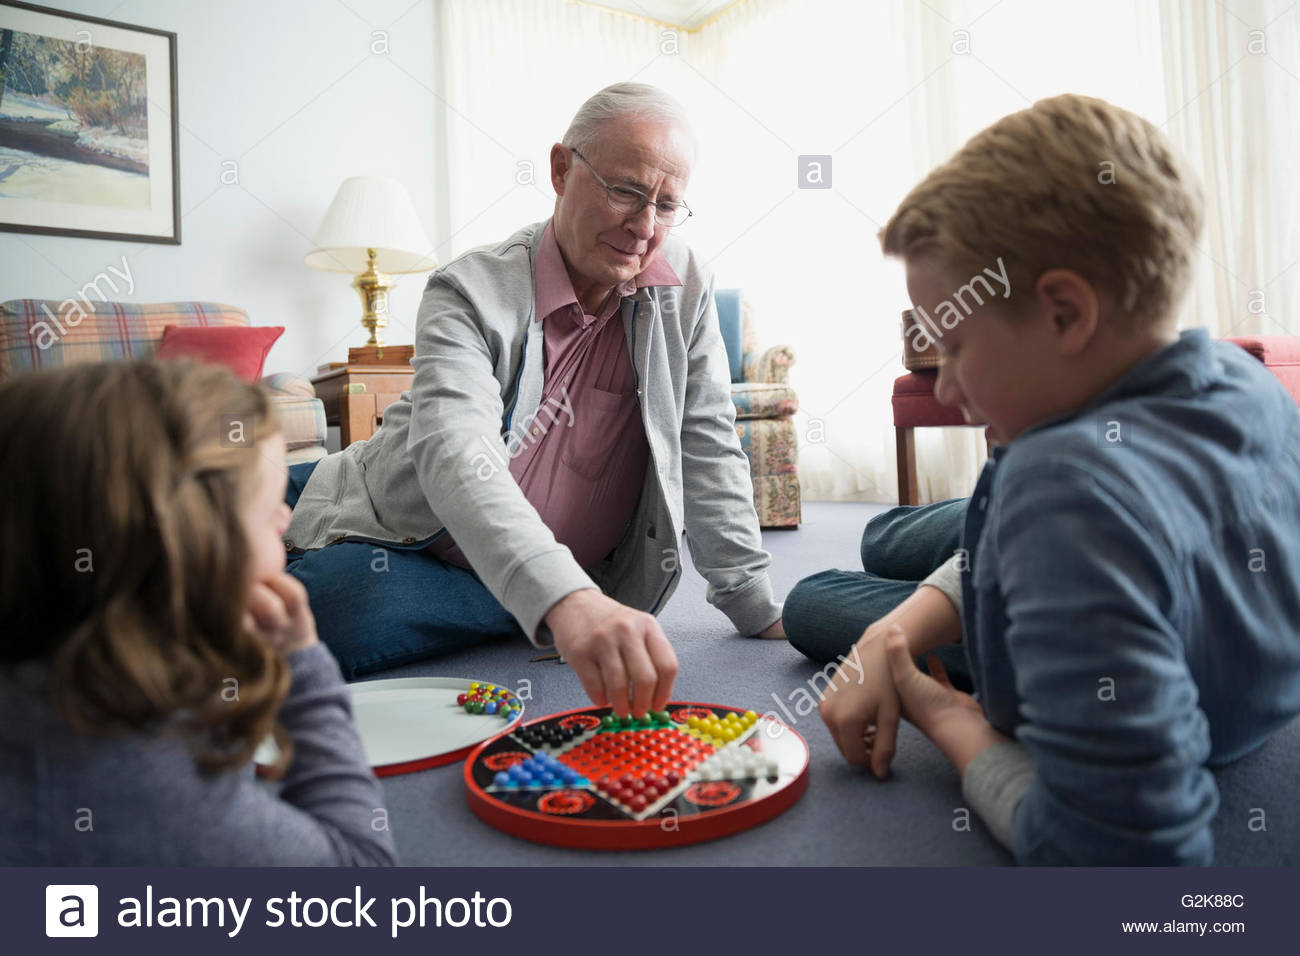 Grandfather and grandchildren playing Chinese checkers - Stock Image